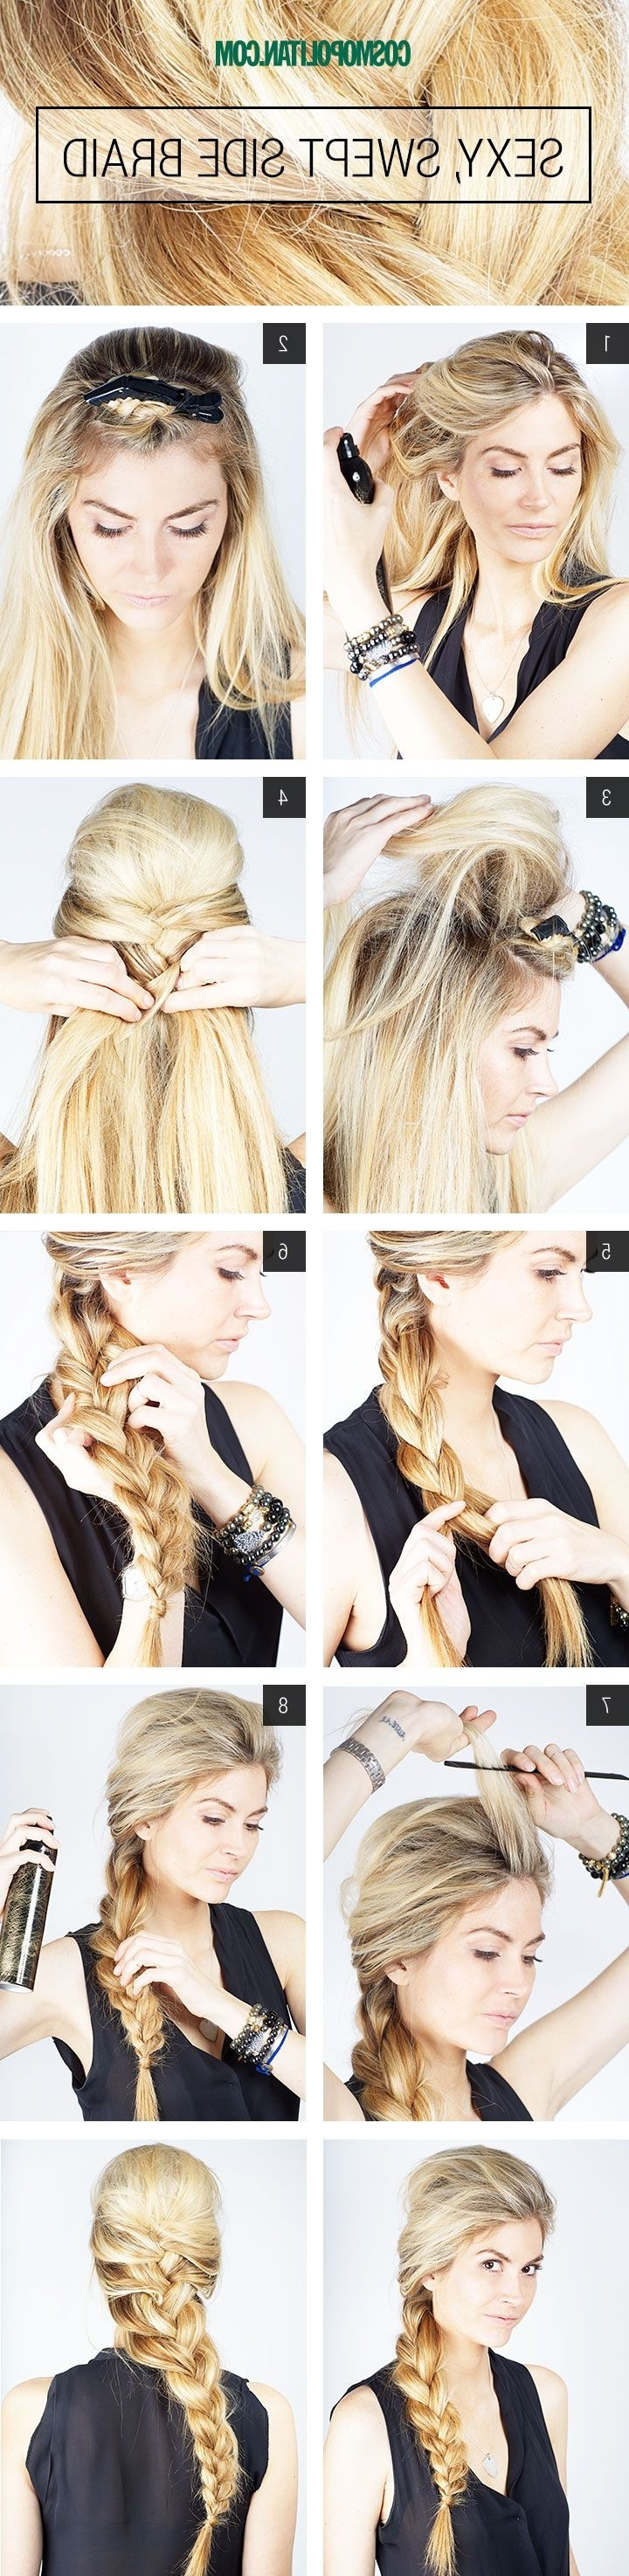 10 French Braids Hairstyles Tutorials: Everyday Hair Styles Pertaining To 2020 Three Strand Side Braided Hairstyles (Gallery 6 of 20)